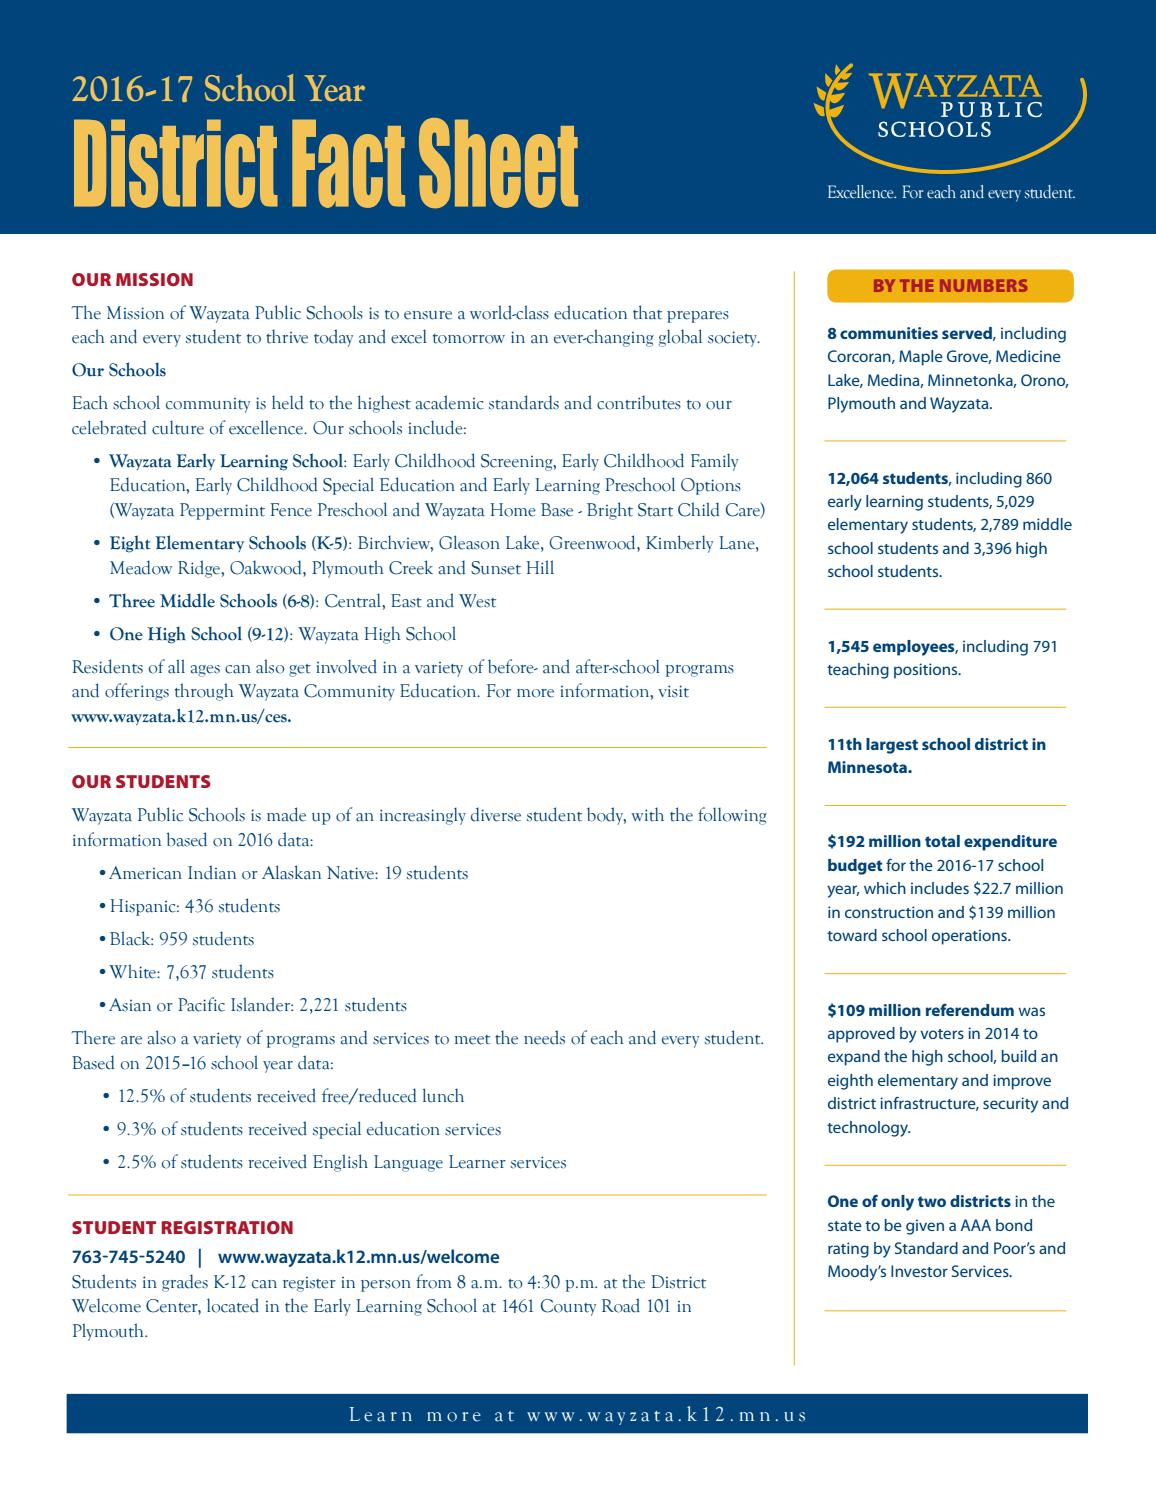 welcome and overview district facts and history district fact sheet 3 months ago wayzatapublicschools